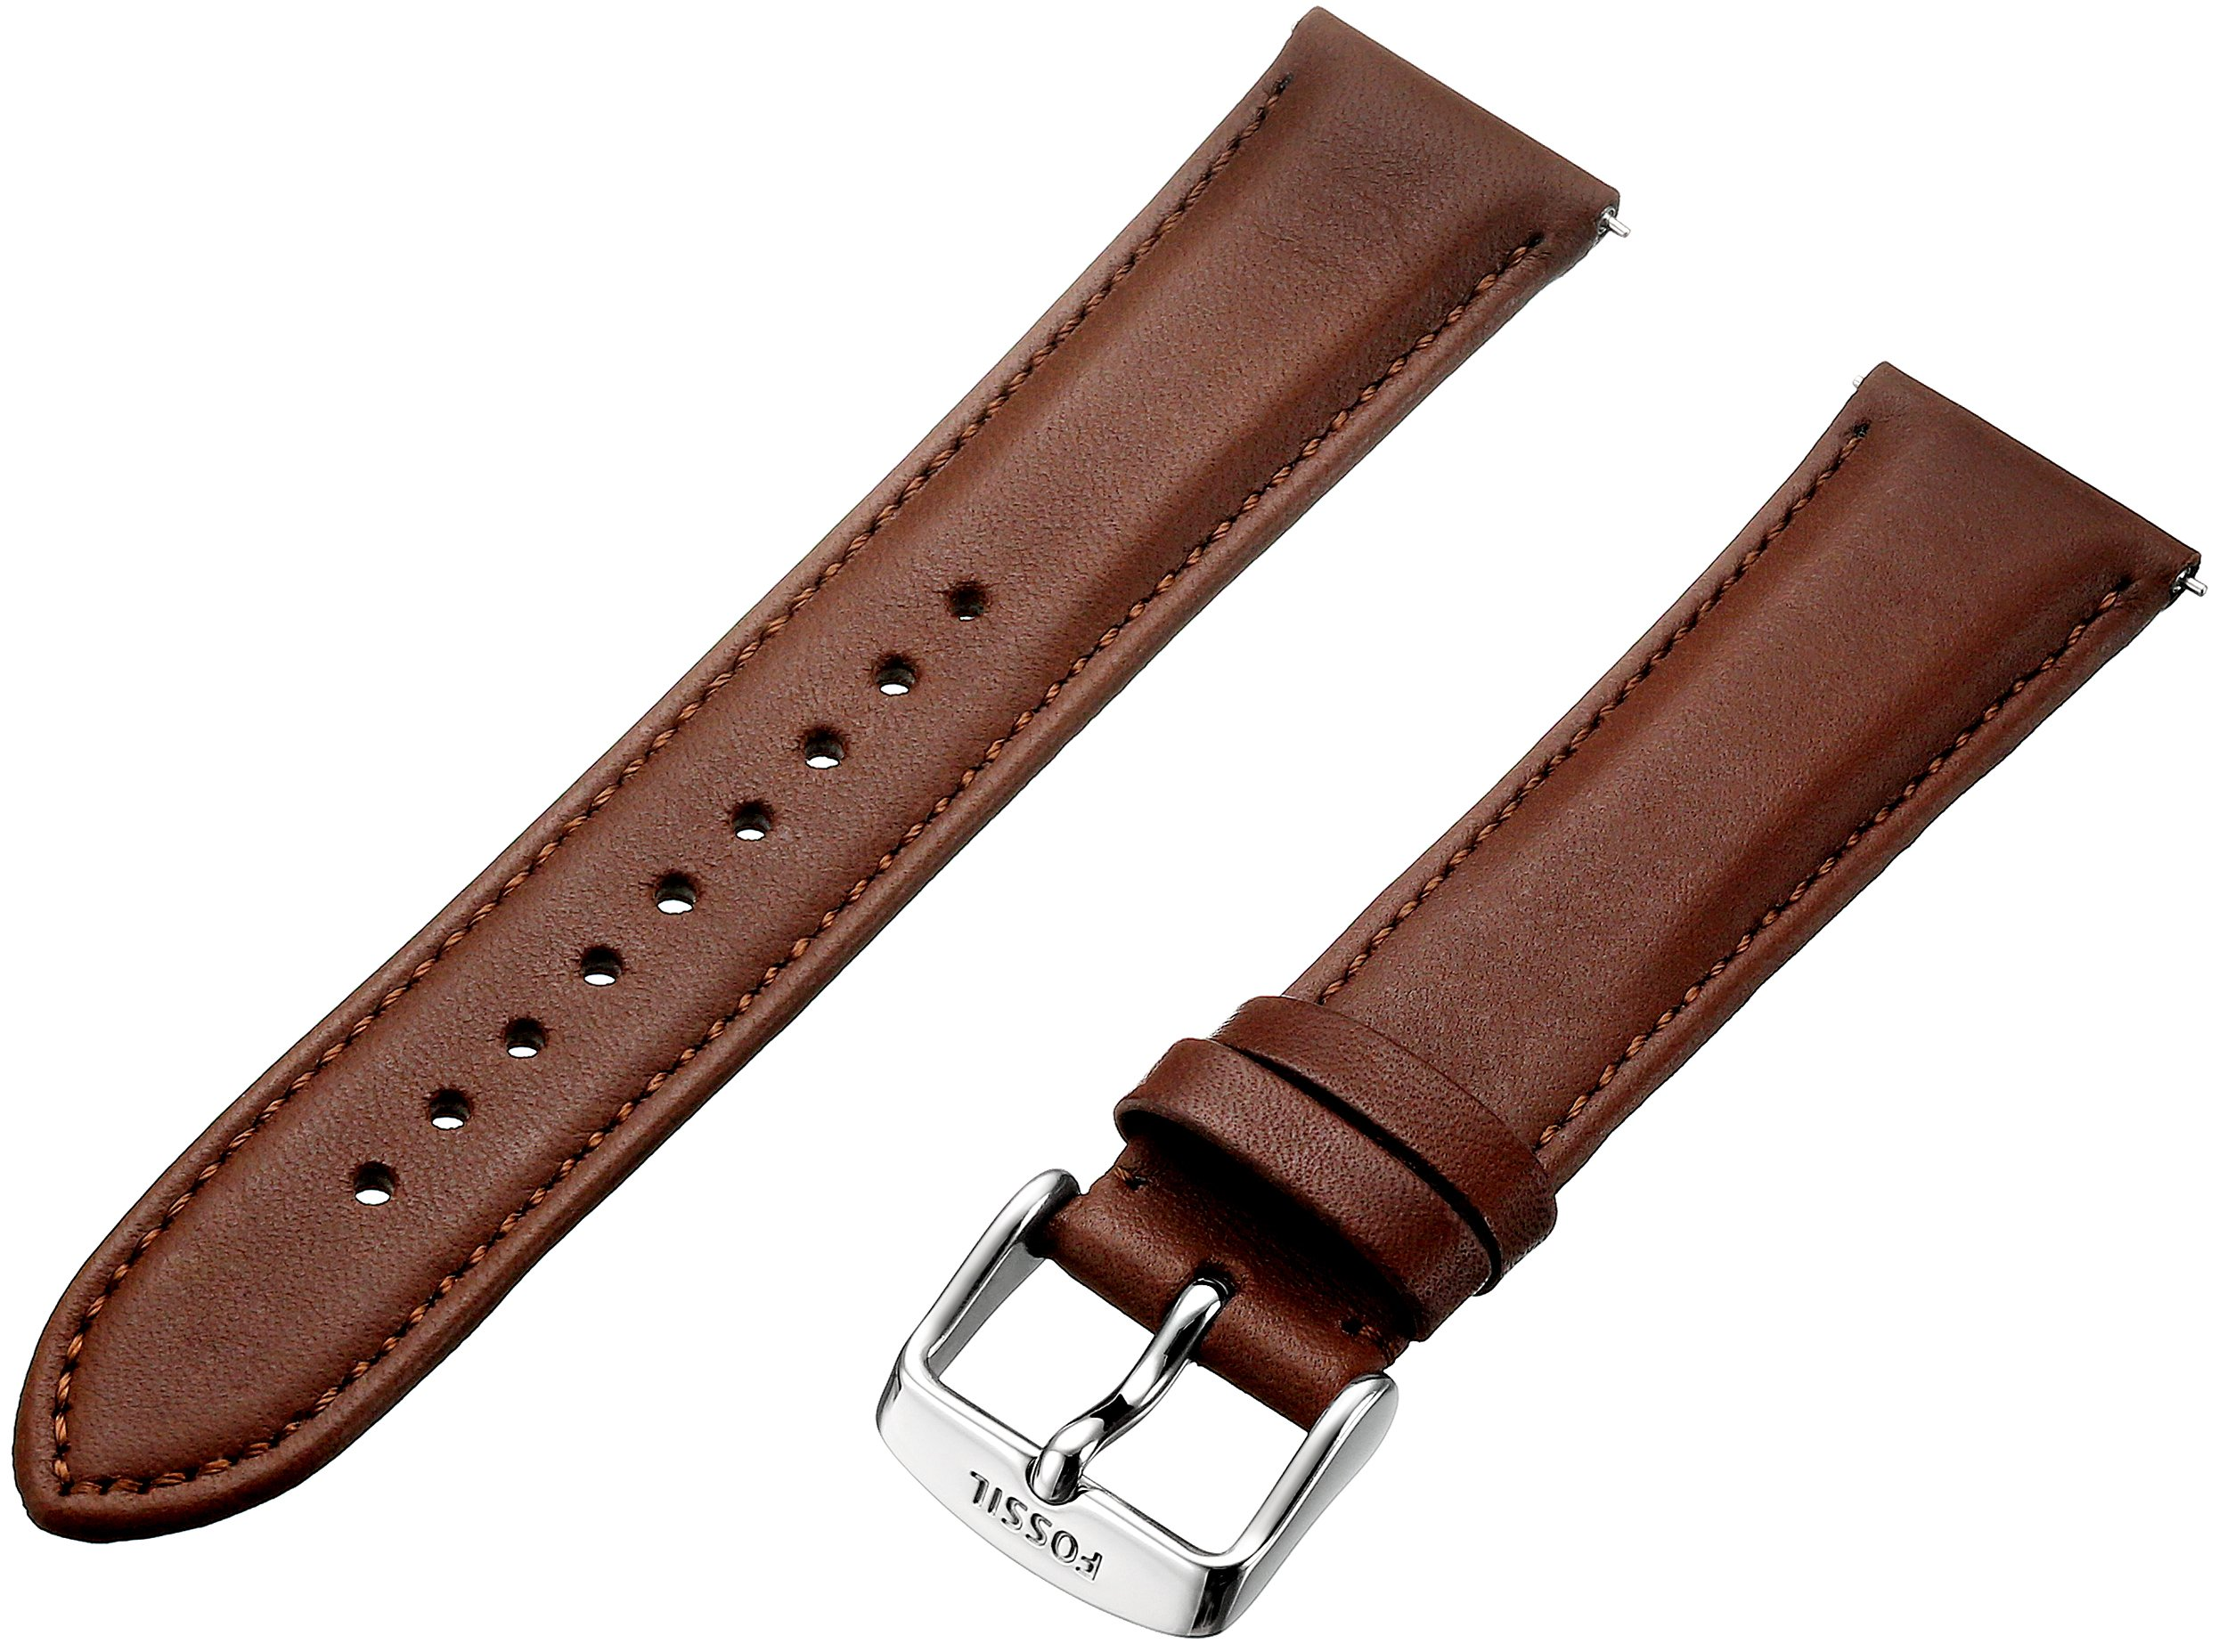 Fossil Women's S201024 20mm Leather Watch Strap - Brown